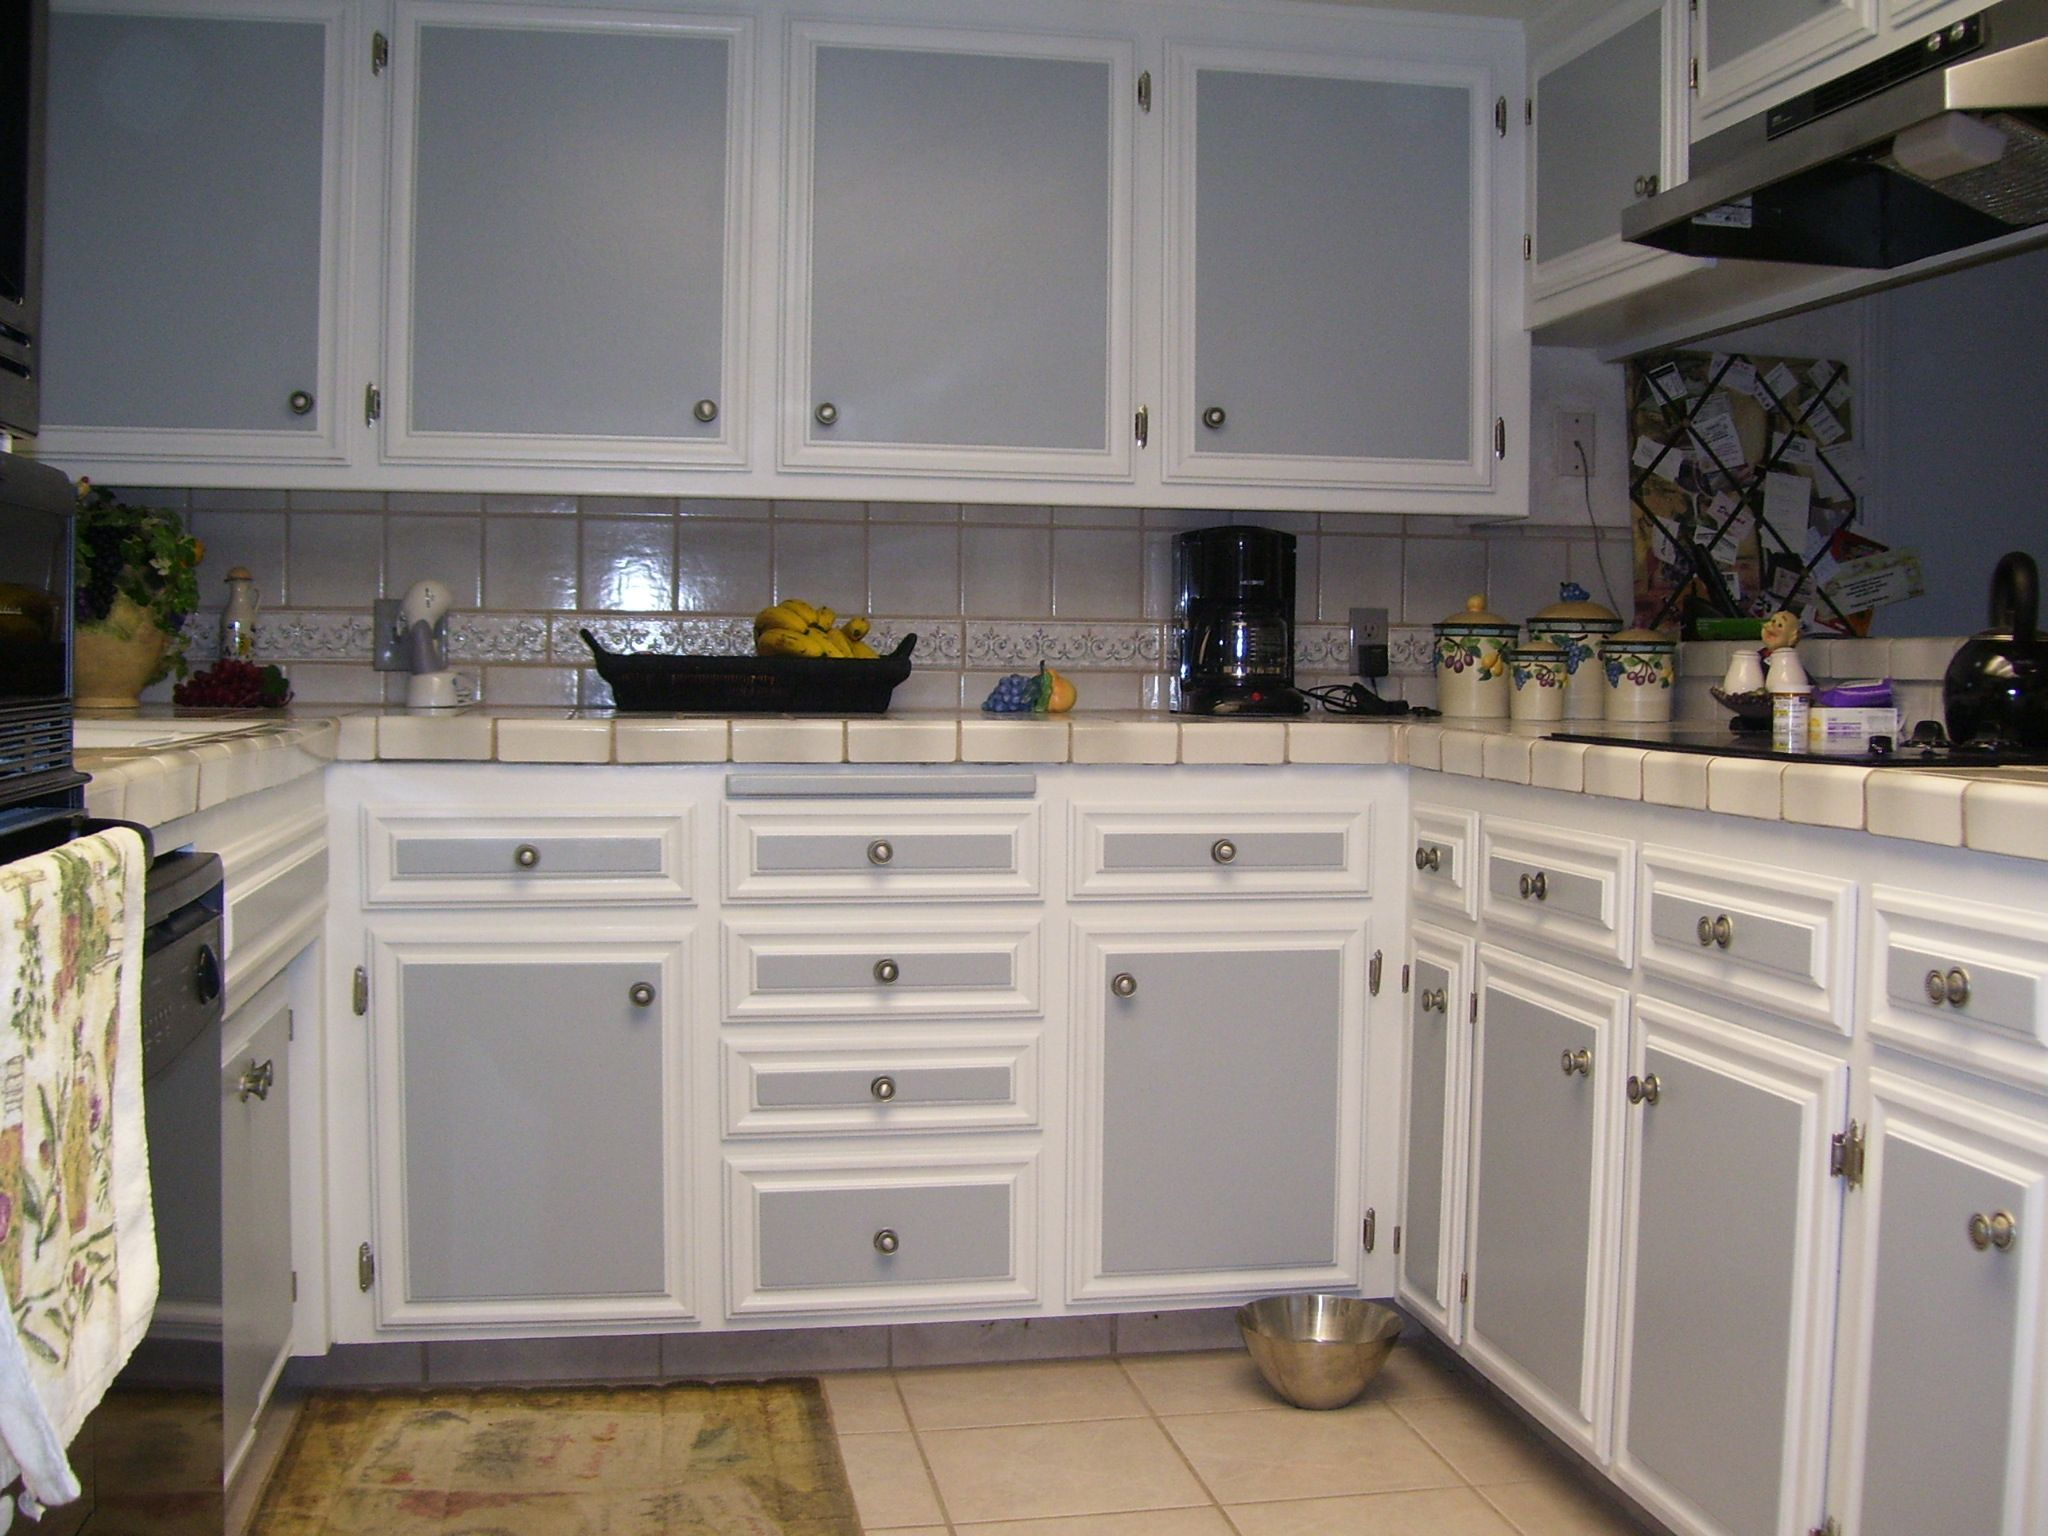 Gray Kitchen Floors Kitchenwhite Kitchen Cabinet Grey Door Brown Tile Floor Ceramic